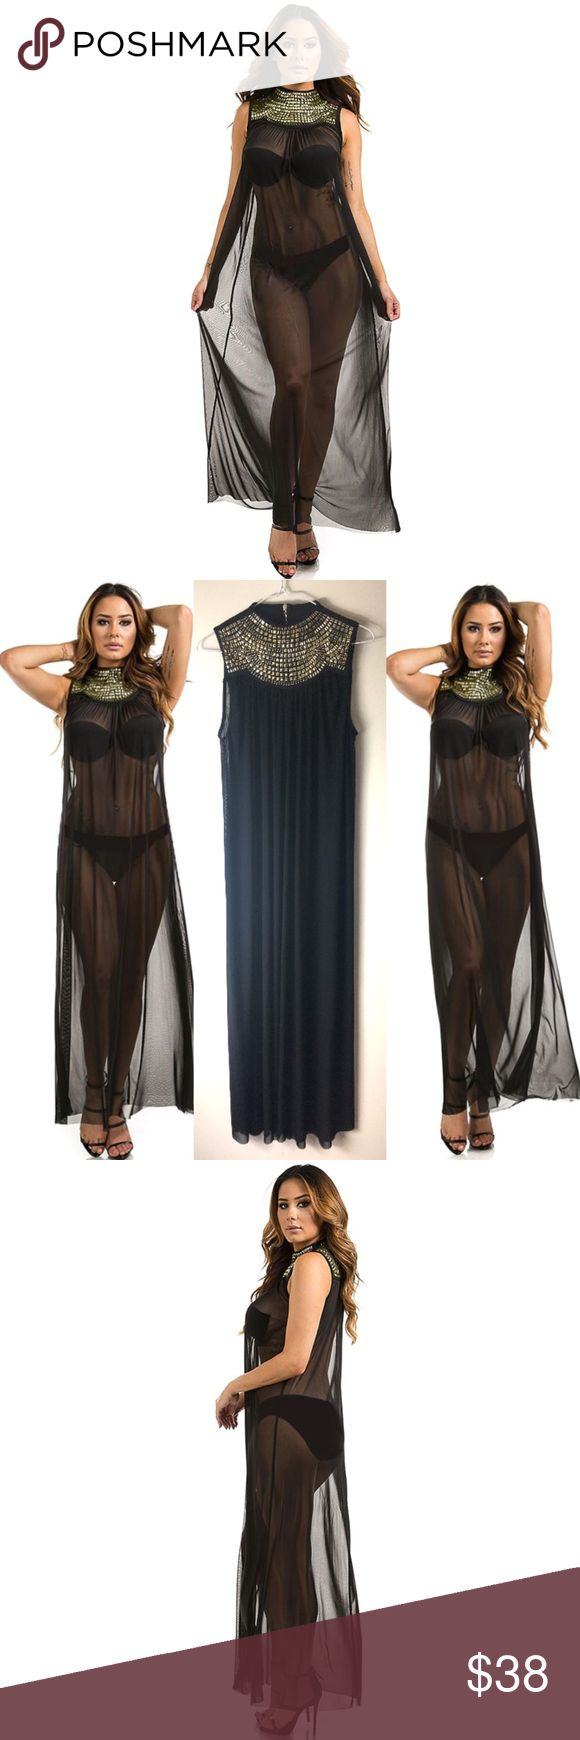 Sexy cleopatra style sheer swim maxi coverup Check out this stunning maxi coverup featuring gold bejeweled neckline. Dress has zipper at back of neck.   Sizes S/M/L  Plus sizes coming soon.   95% poly, 5% spandex Swim Coverups